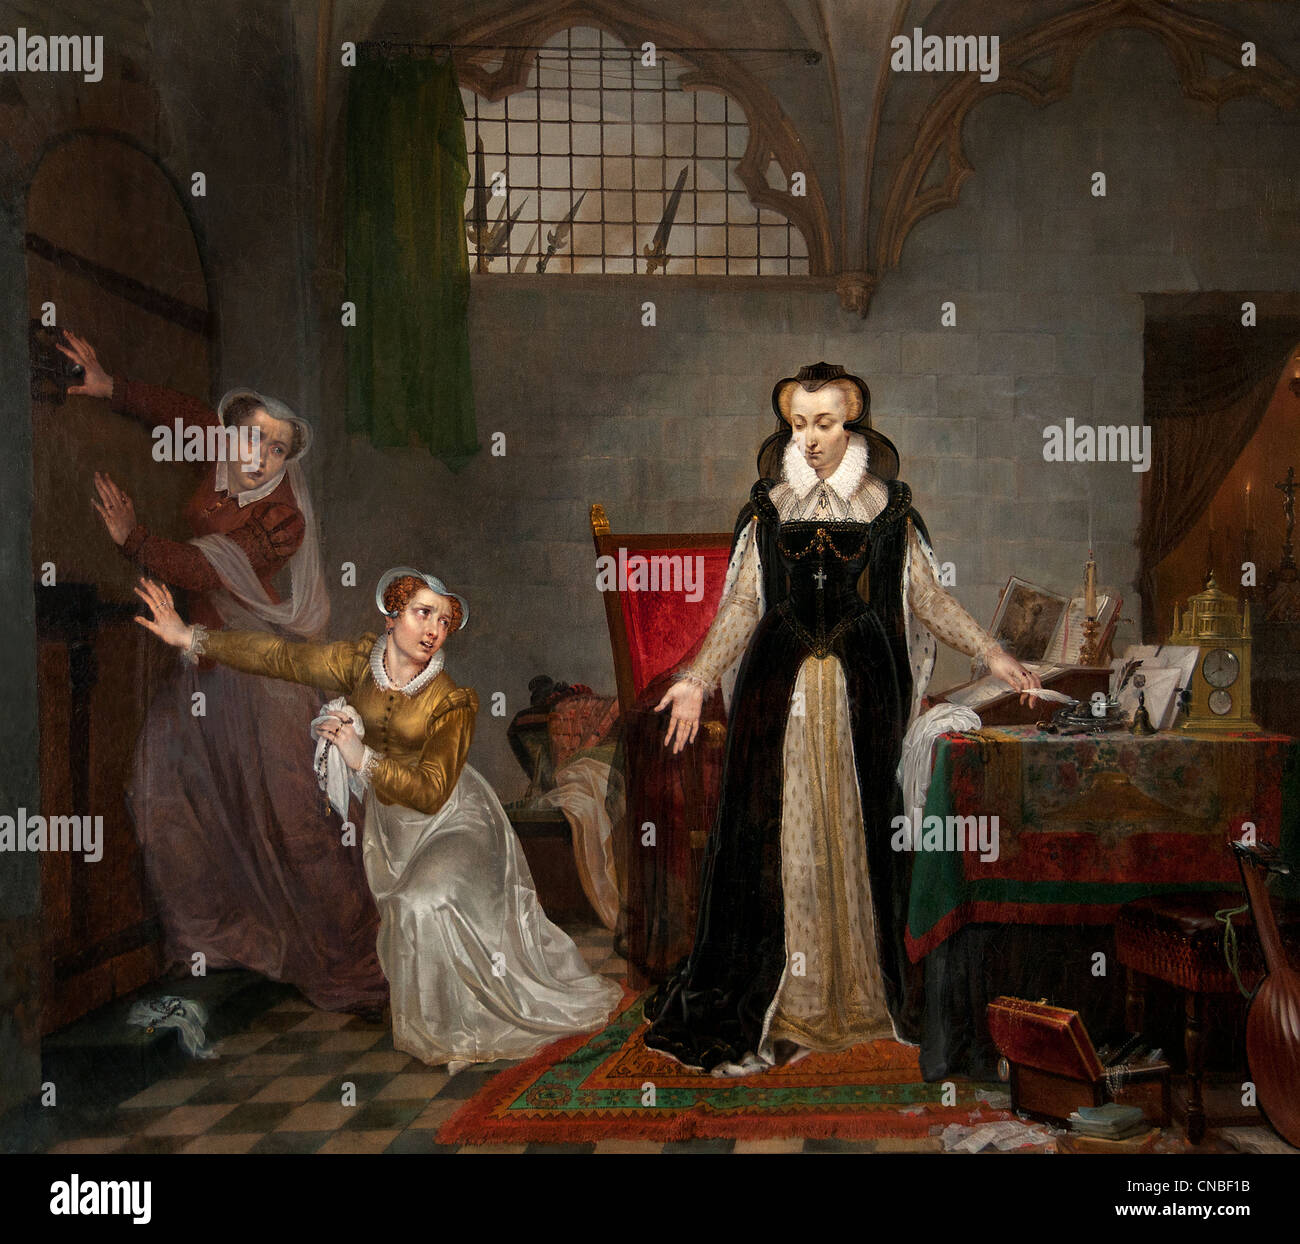 Mary Stuart Queen of Scots when it comes to get her to go to death by Philippe Scotland Jacques van Bree1819 Belgian - Stock Image